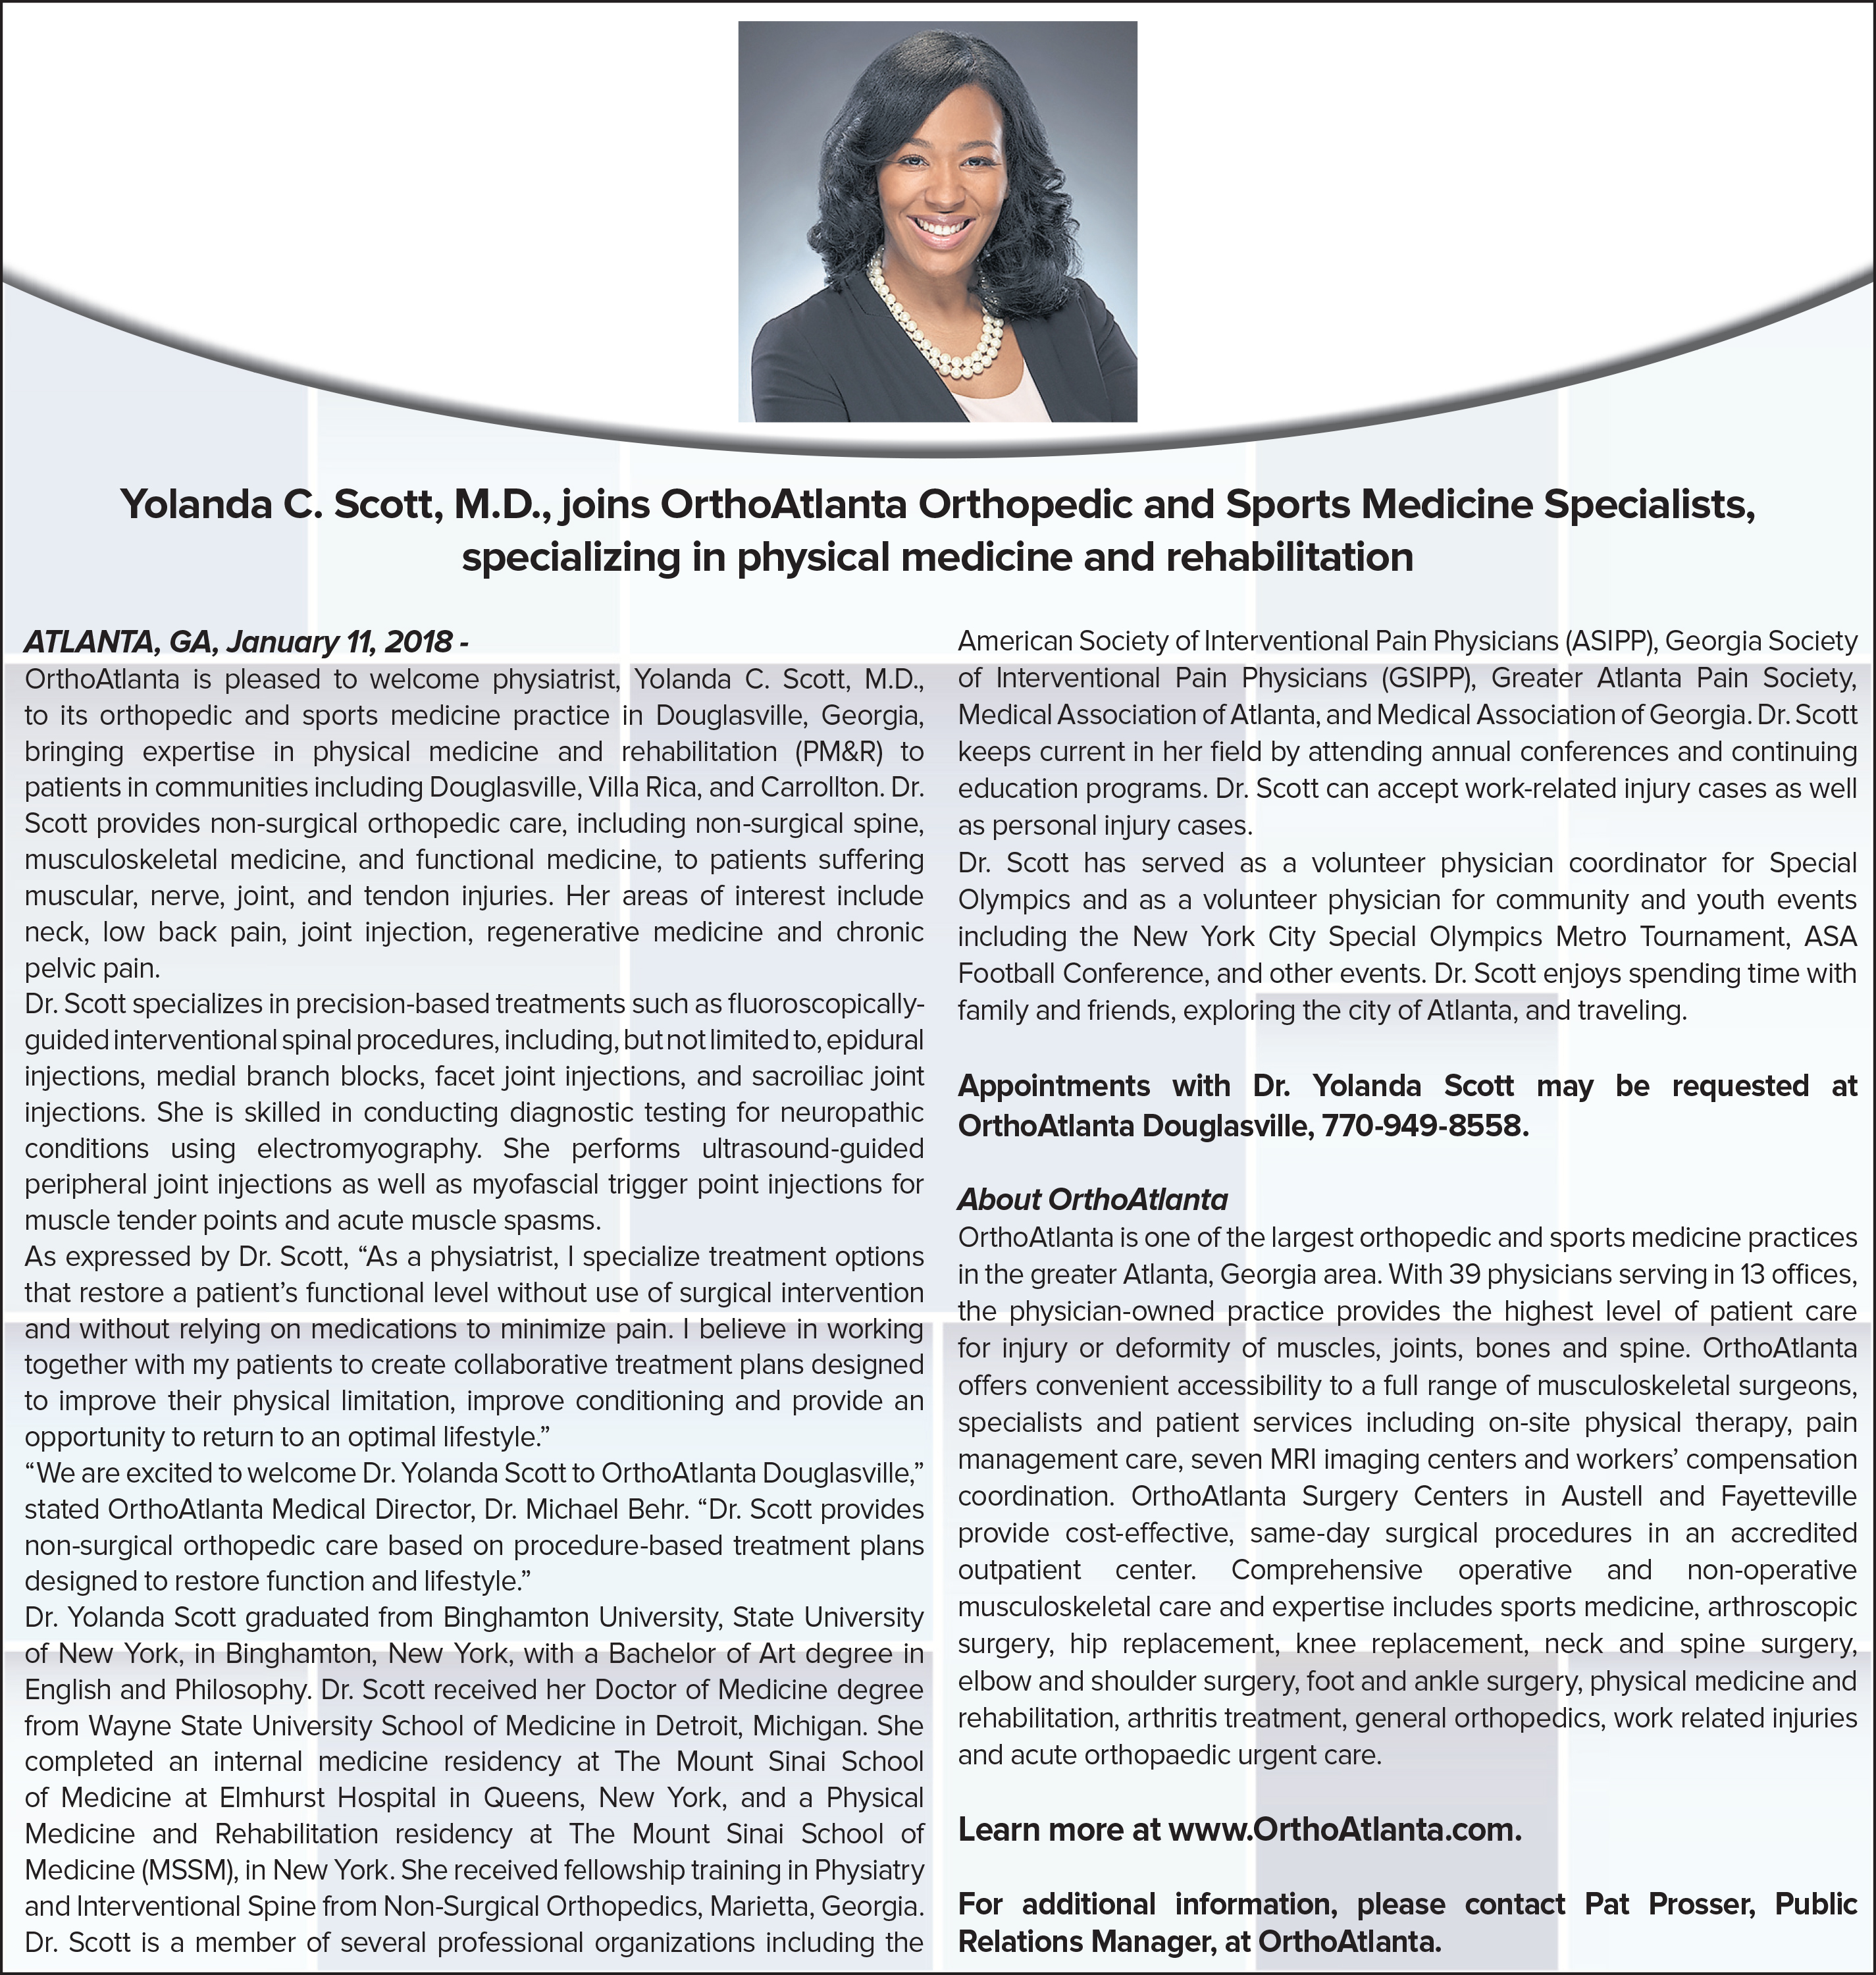 Yolanda Scott, M.D. joins OrthoAtlanta Orthopedic and Sports Medicine Specialists